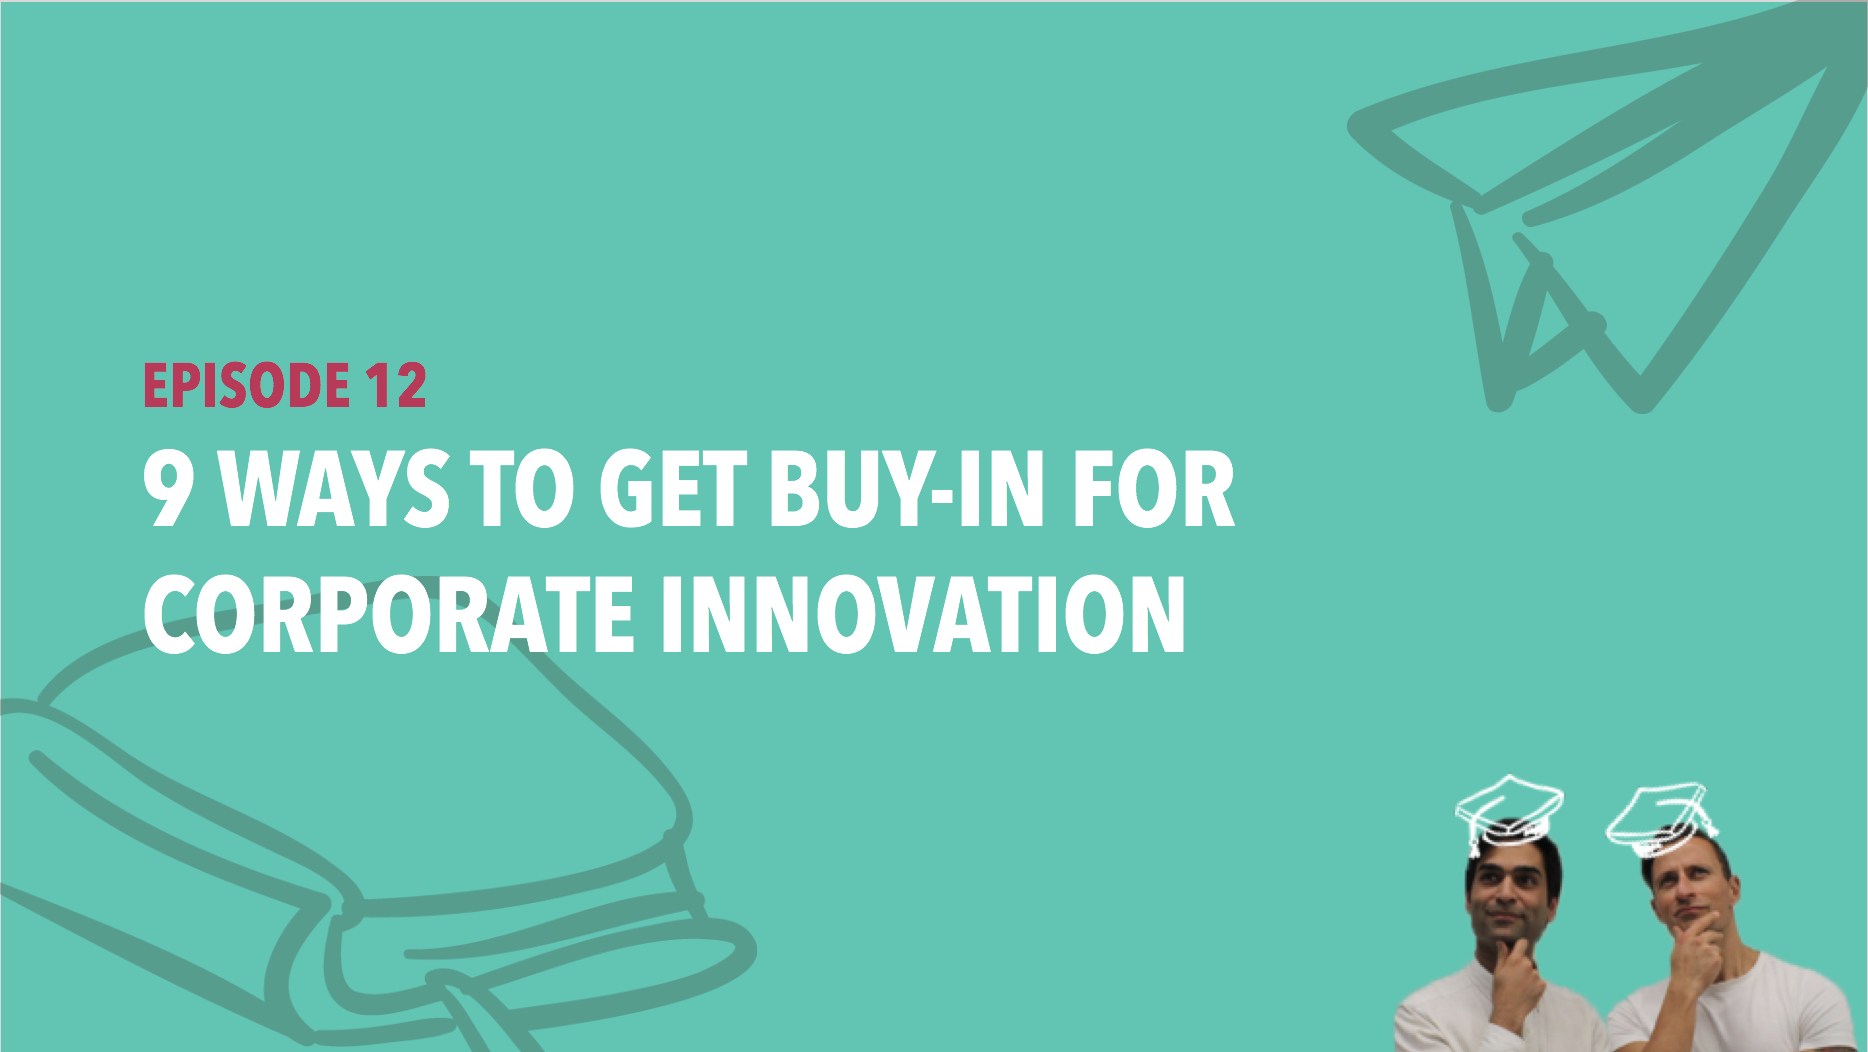 CiSchool Episode #012: 9 Ways to get buy-in for corporate innovation